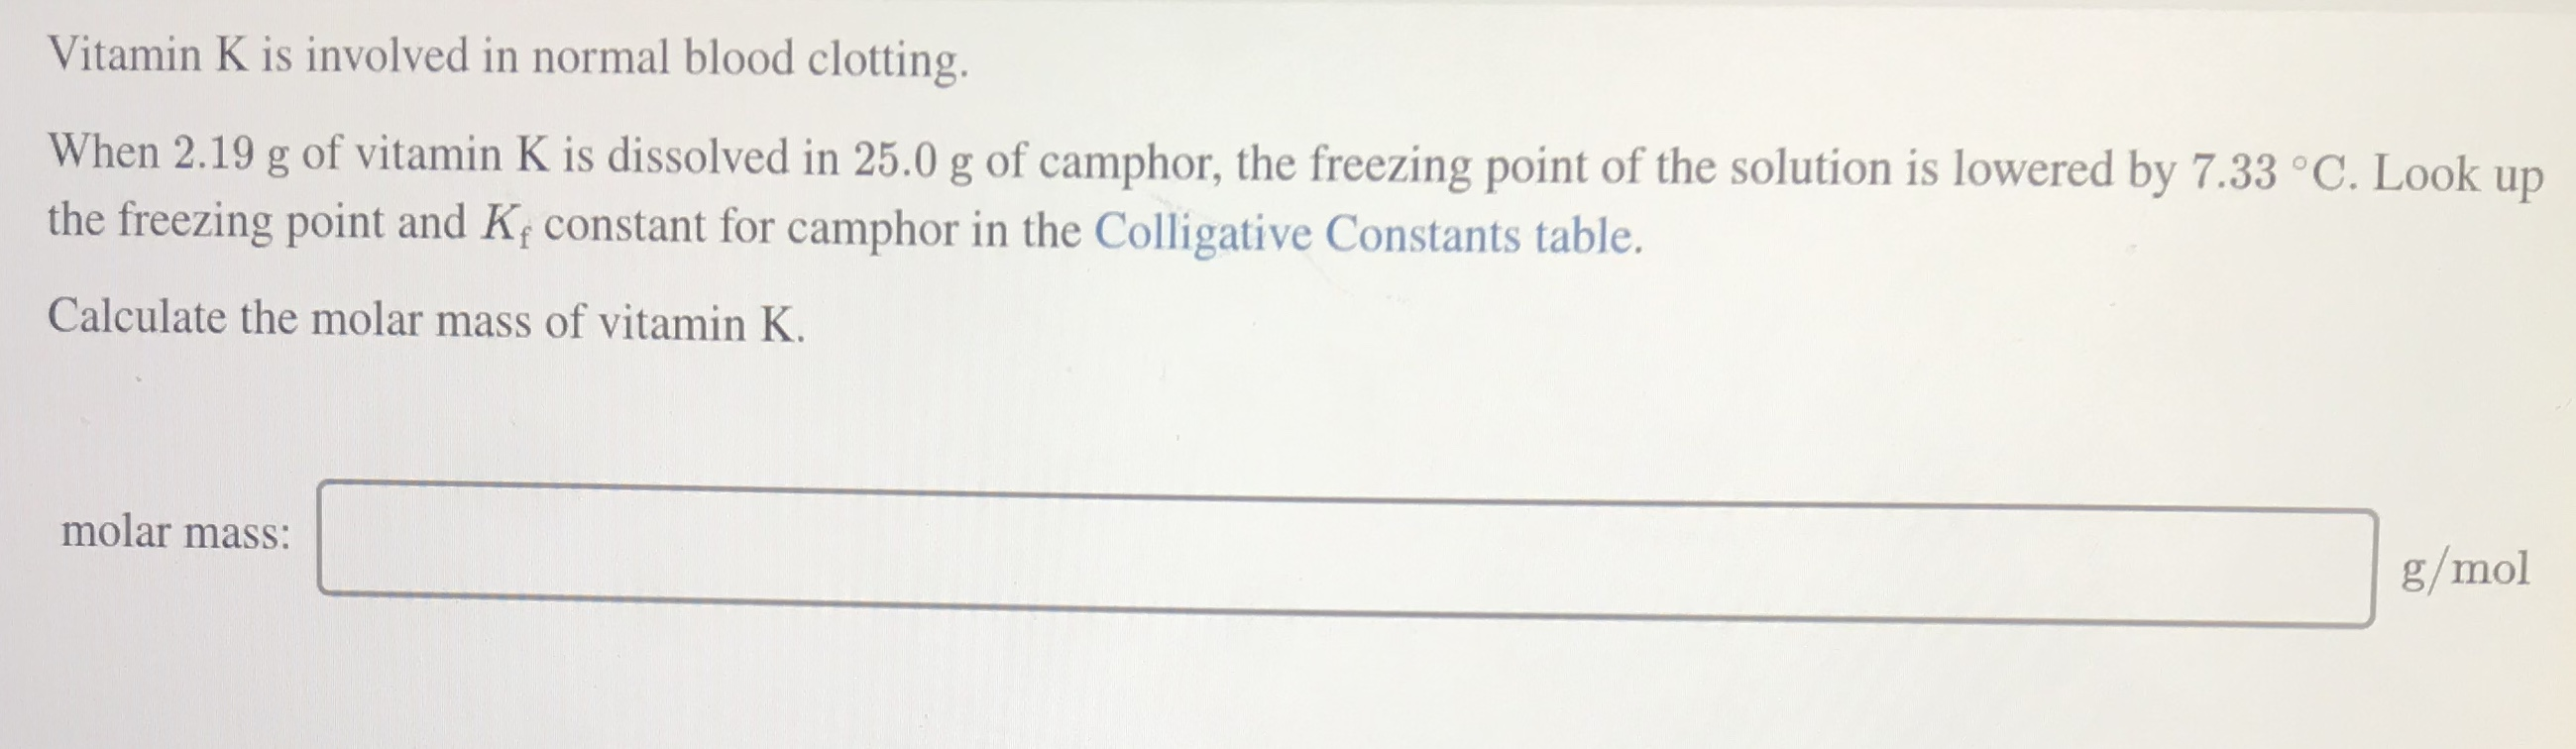 Vitamin K is involved in normal blood clotting. When 2.19 g of vitamin K is dissolved in 25.0 g of camphor, the freezing point of the solution is lowered by 7.33 °C. Look up the freezing point and Kf constant for camphor in the Colligative Constants table. Calculate the molar mass of vitamin K. molar mass: g/mol